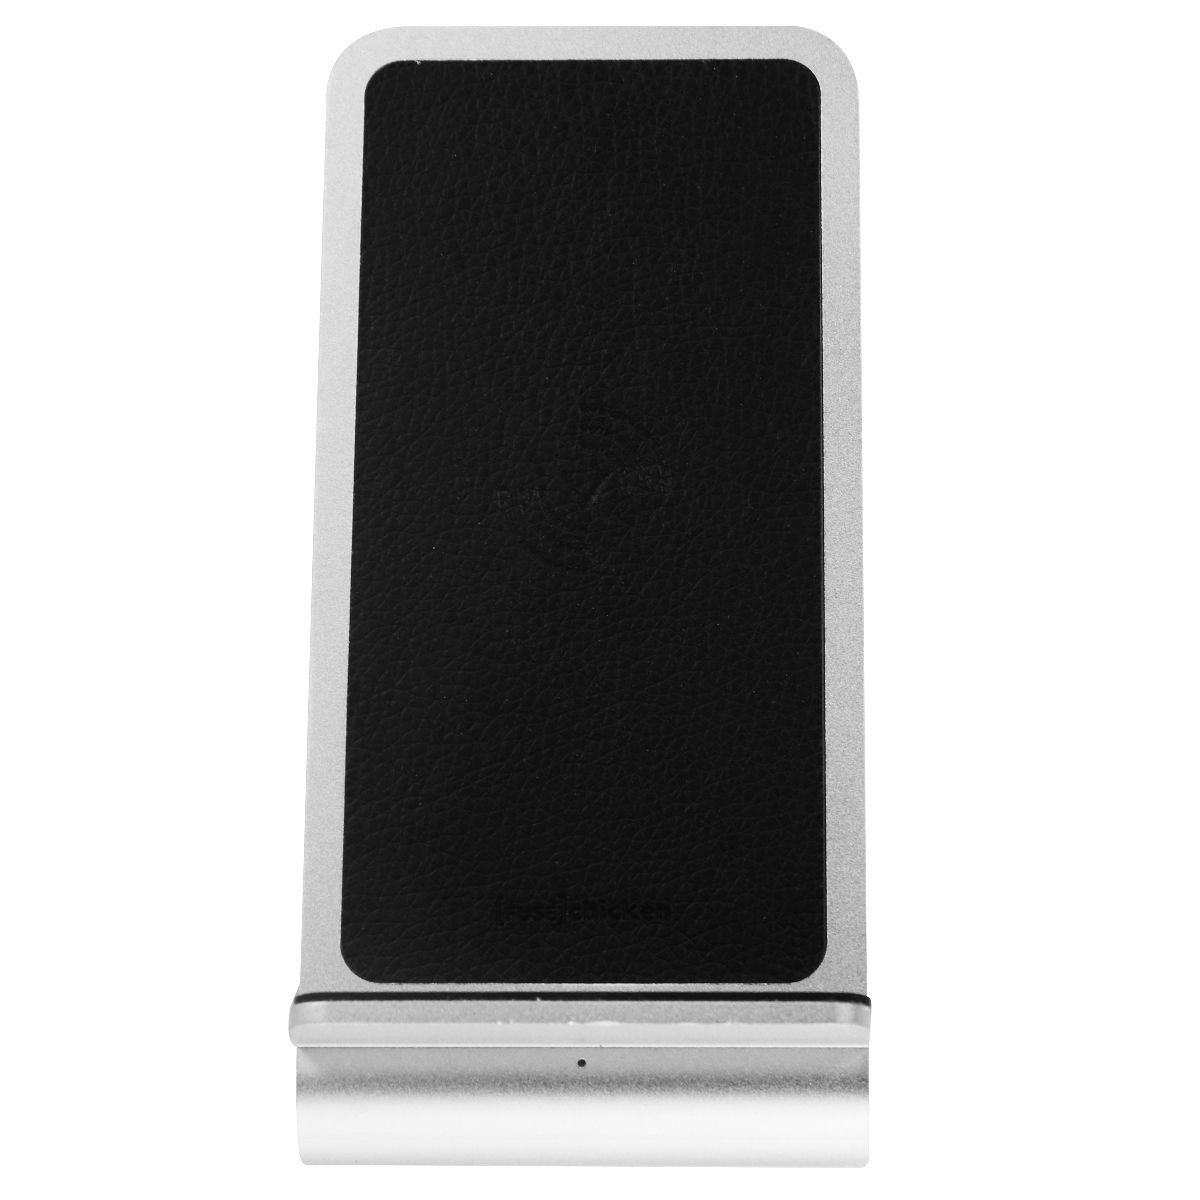 Gravity Lift by Fuse Chicken Premium Wireless Charging Stand for iPhone X 8 S9